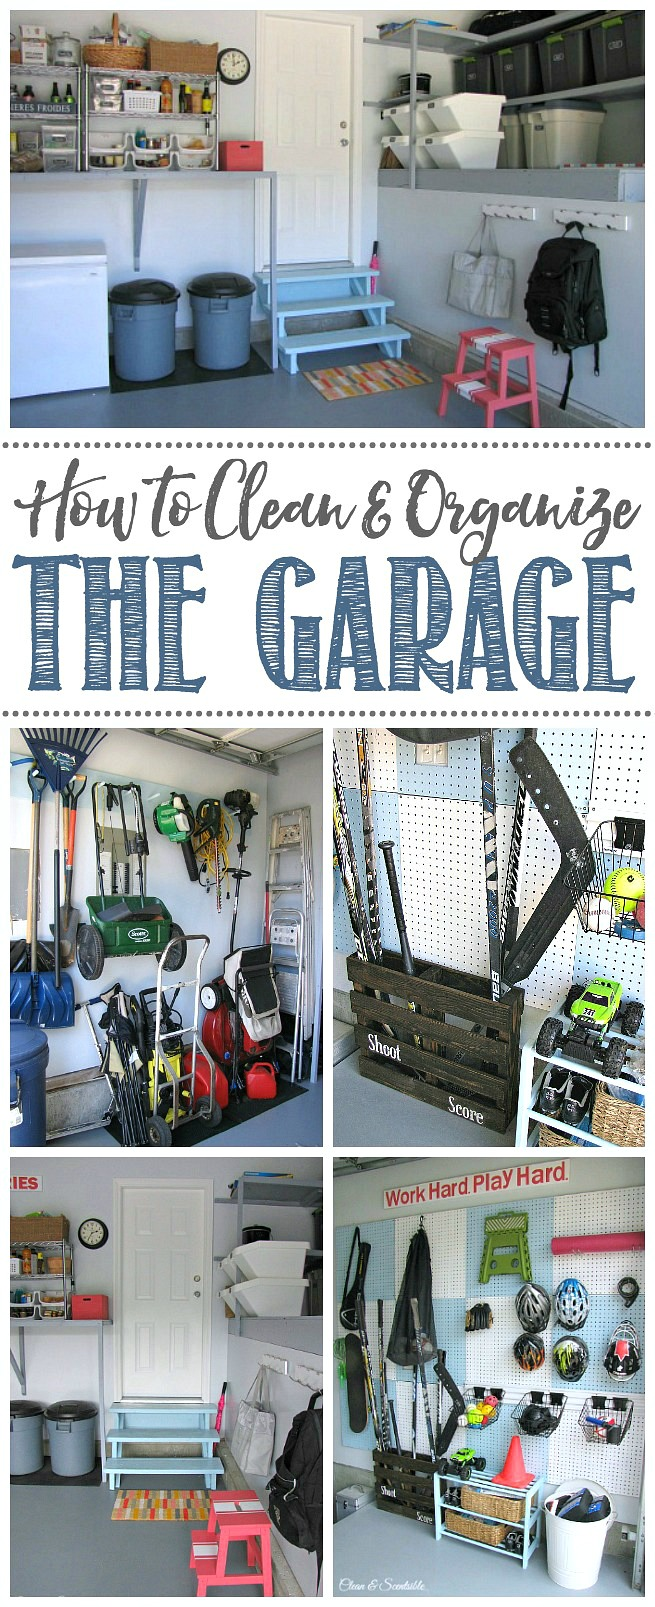 Collection of garage organization ideas.